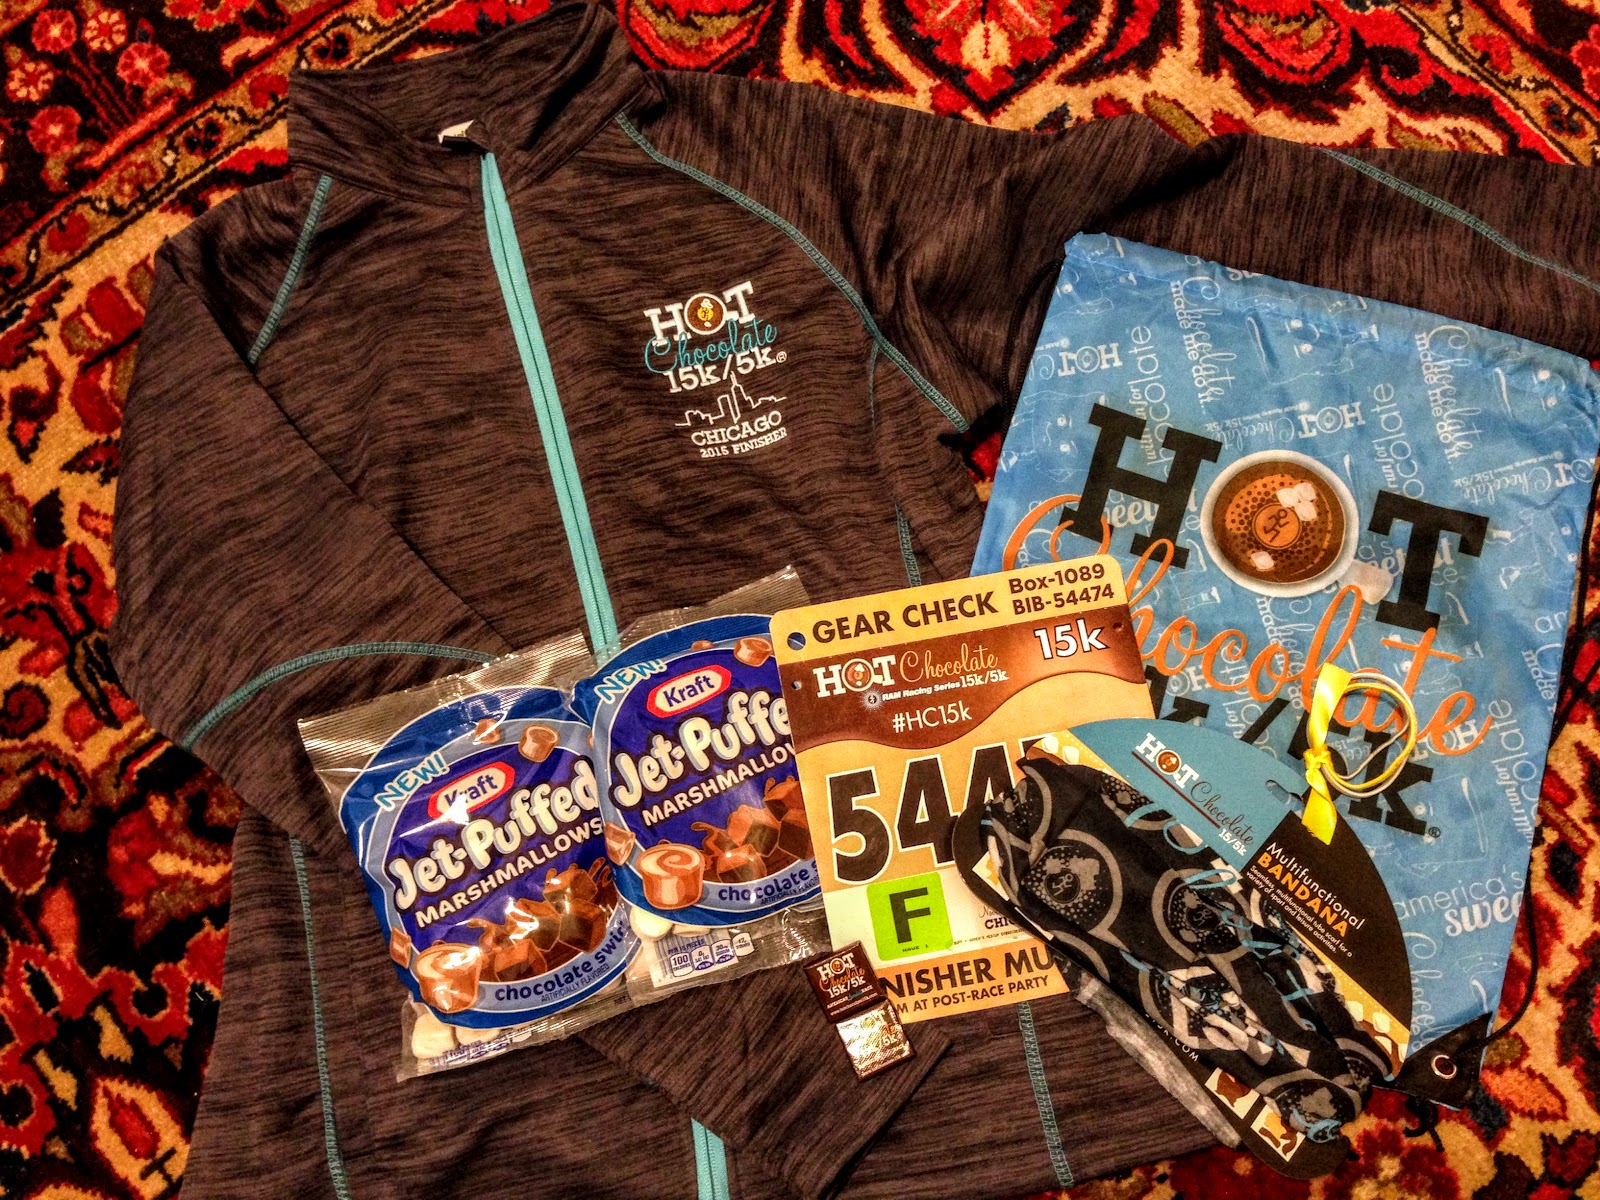 Gone bananas for running: Race Recap: 2015 Hot Chocolate 15k